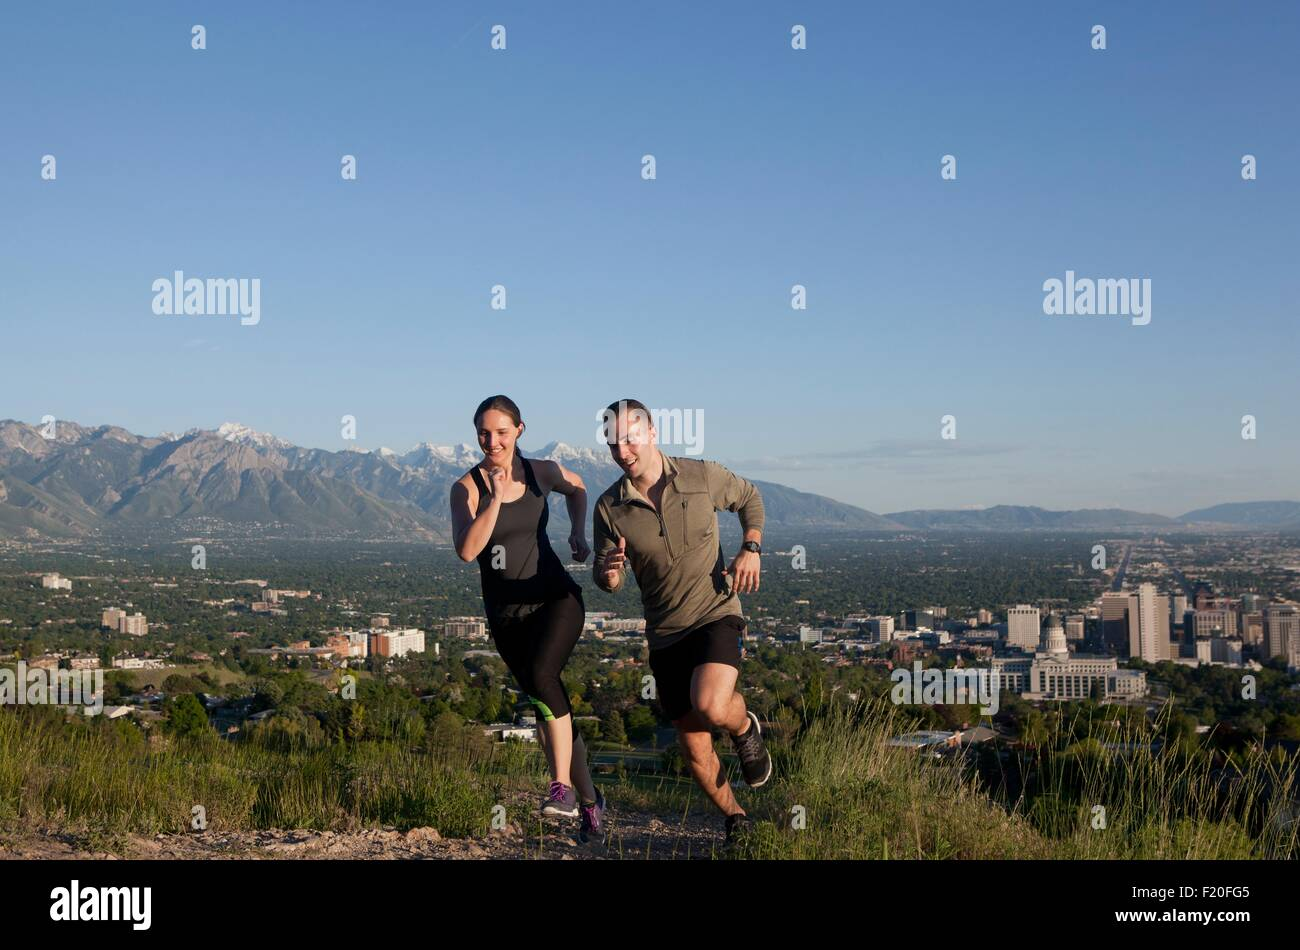 Young female and male runners racing along track above city in valley - Stock Image